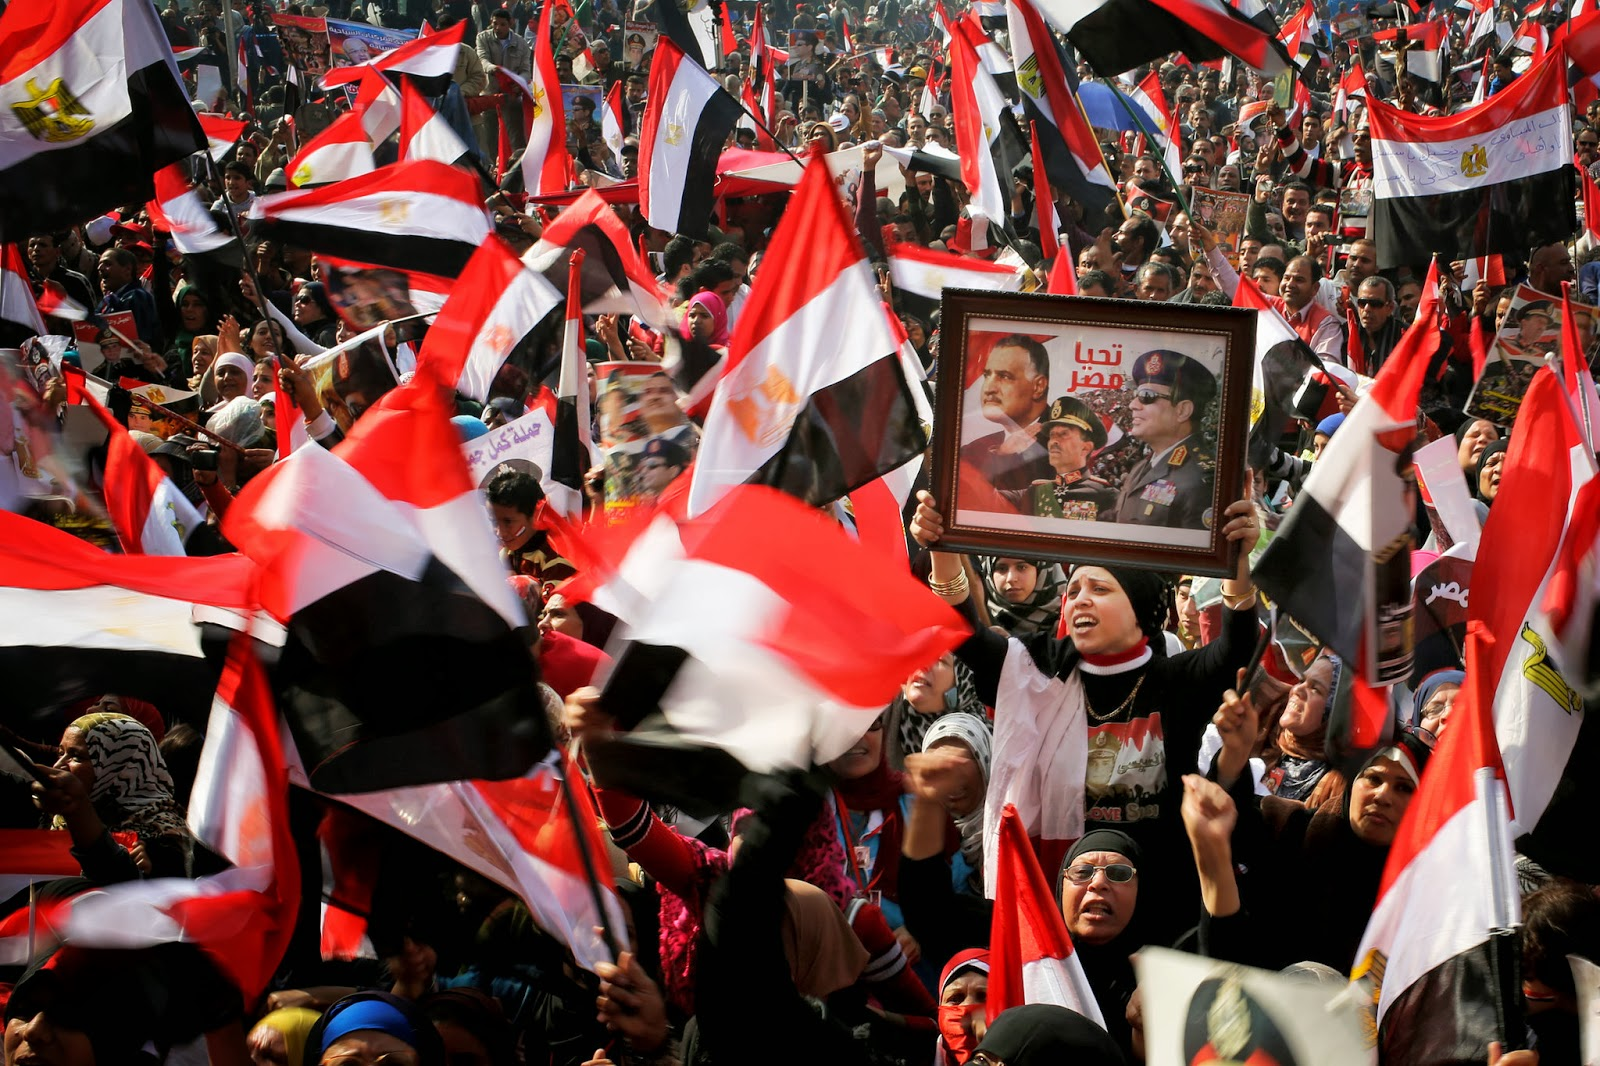 Sisi mania has swept Egypt since the ouster of Islamist President Mohammed Morsi  [Credit: Tara Todras-Whitehill for the New York Times]